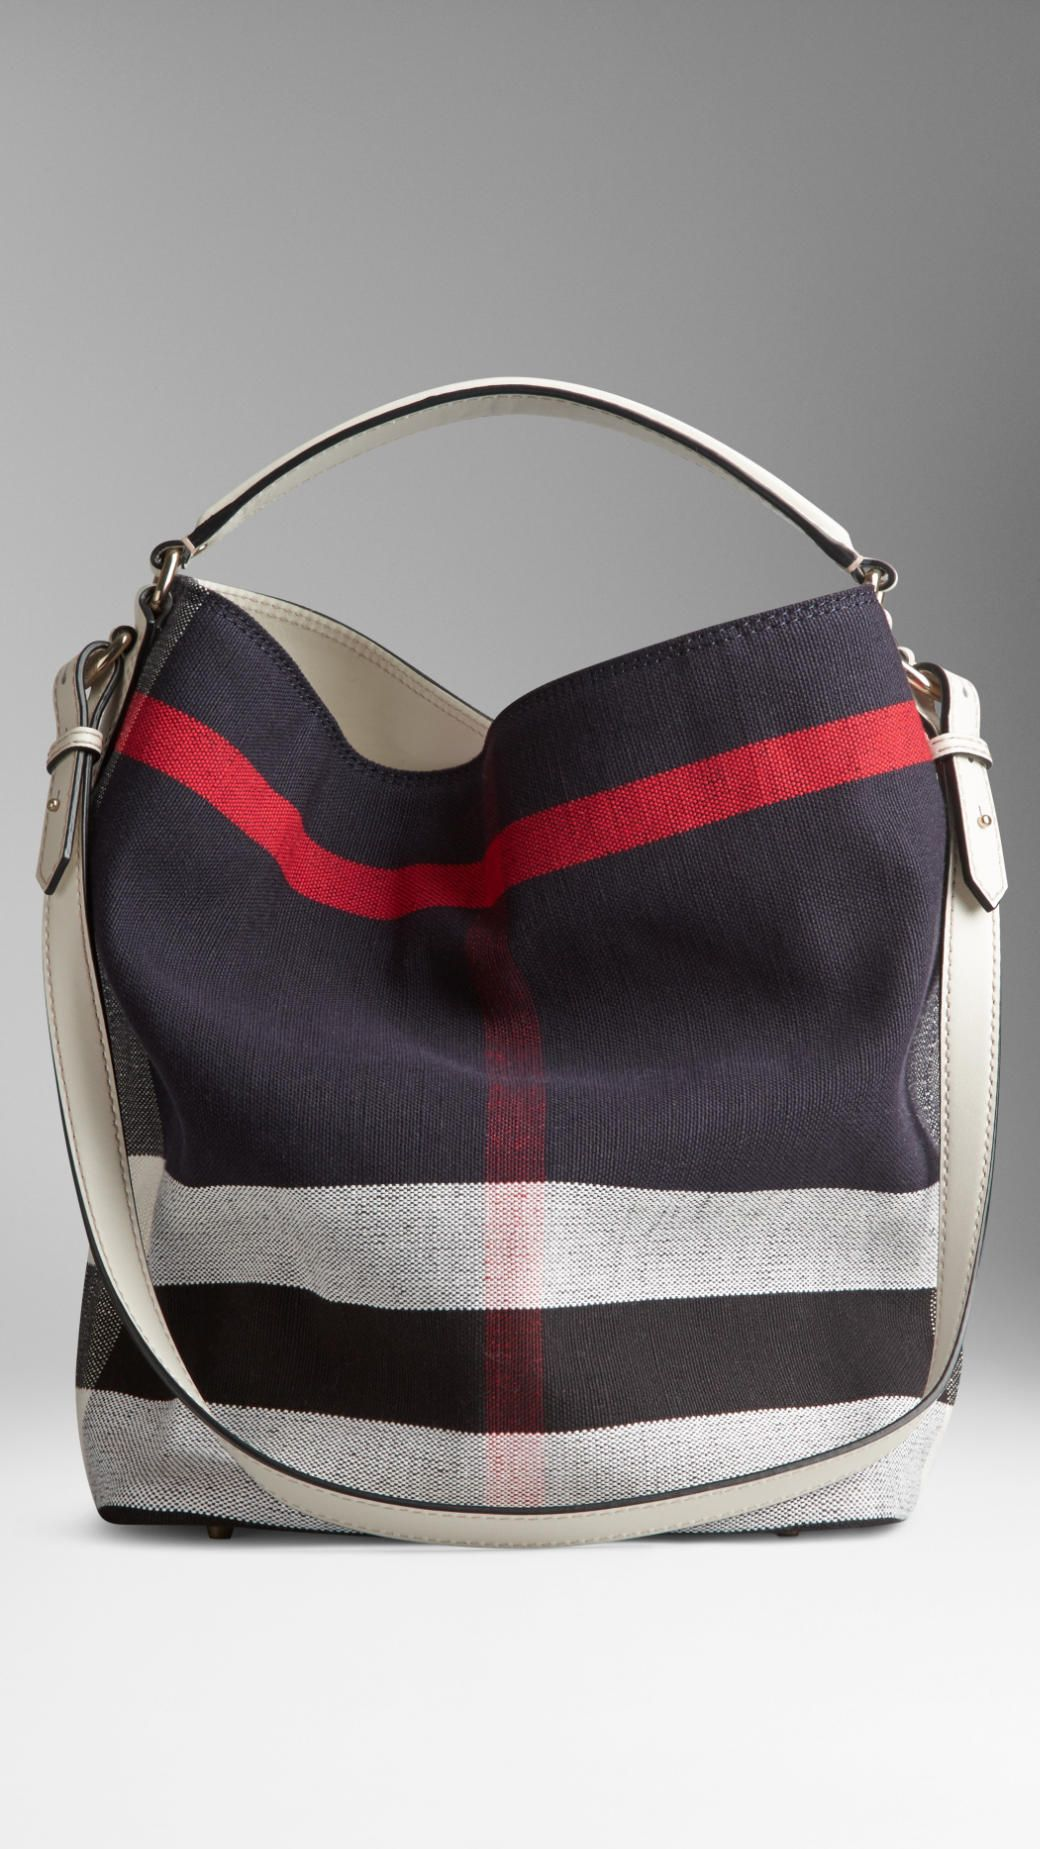 0a37ab94b191 Want this Burberry Brit bucket bag for the beach!